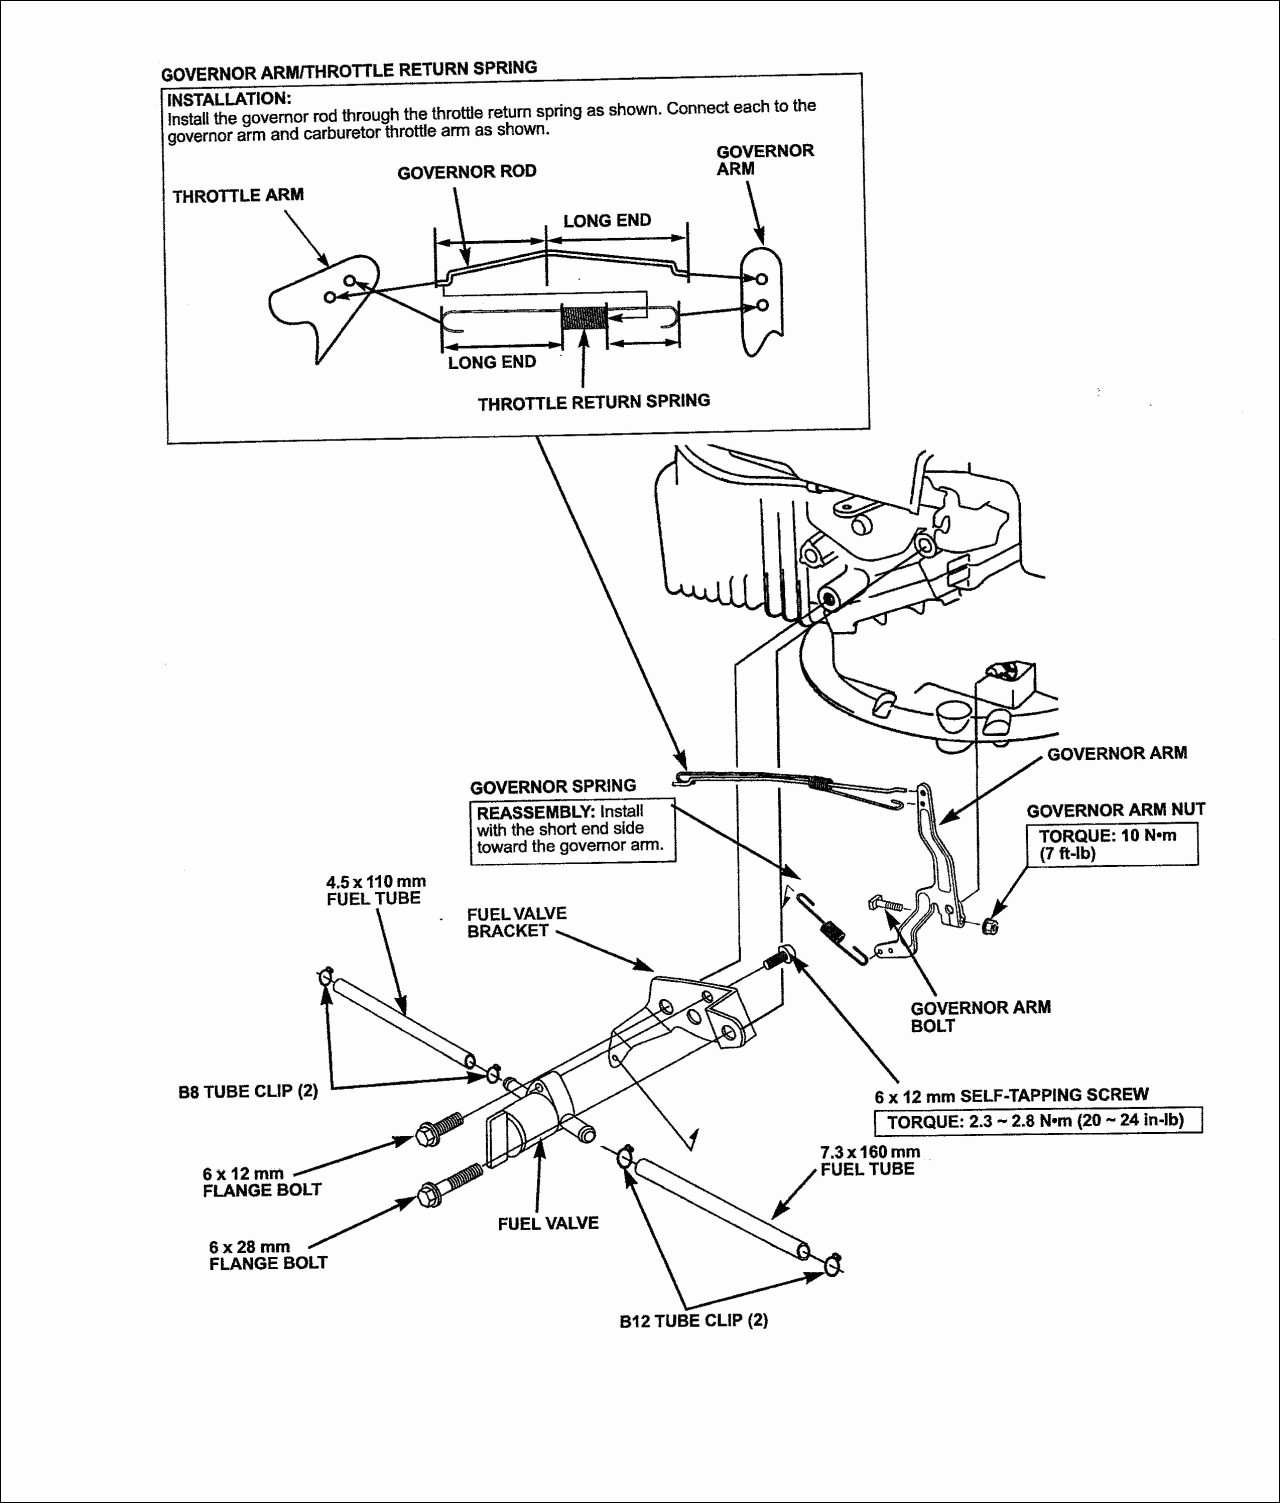 Infiniti Q45 Engine Diagram 1997 Infiniti I30 Fuse Box Diagram Infiniti Wiring Diagrams Of Infiniti Q45 Engine Diagram